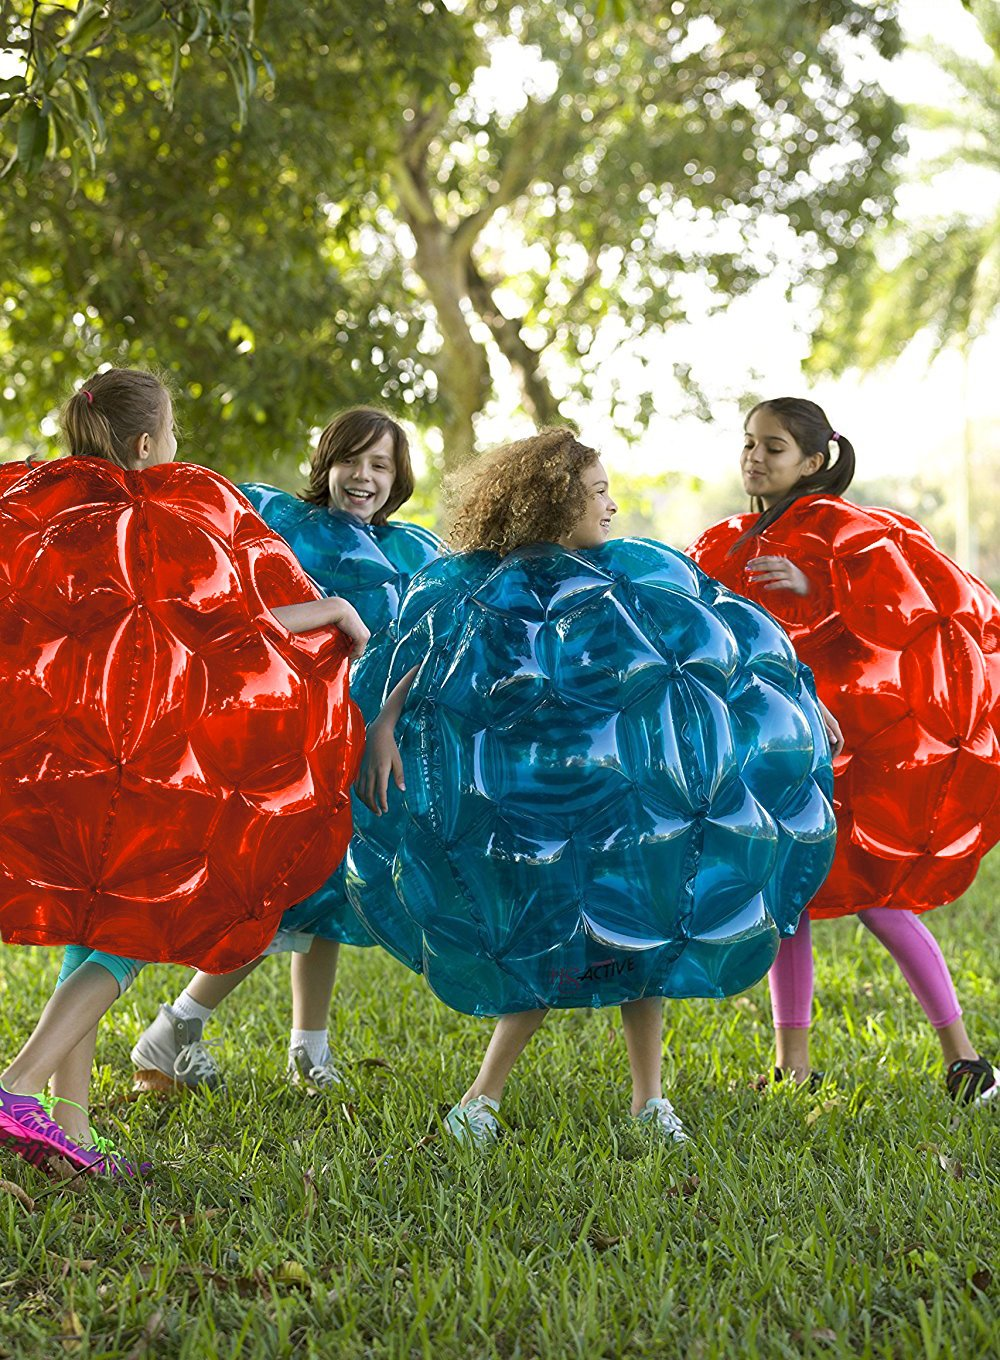 Inflatable 36'' Wearable Buddy Bumper Zorb Balls Heavy Duty Durable PVC Viny Bubble Soccer Outdoor Game (2-Pack,Blue&Red)) ... by Holleyweb (Image #4)